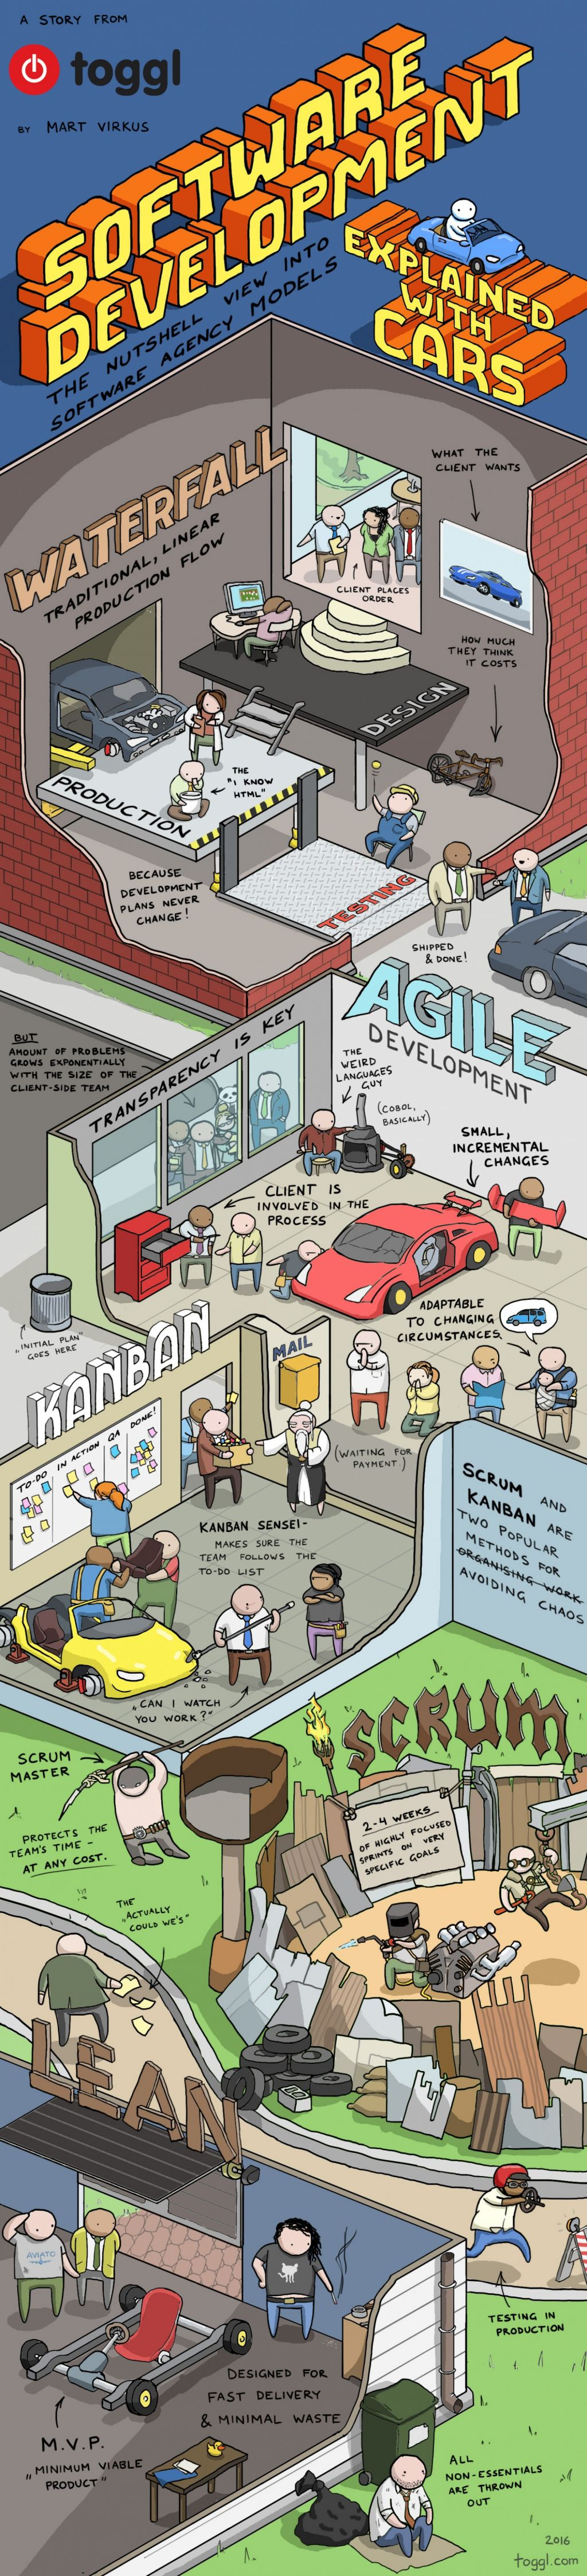 software-development-explained-with-cars_56b3abd983845_w1500